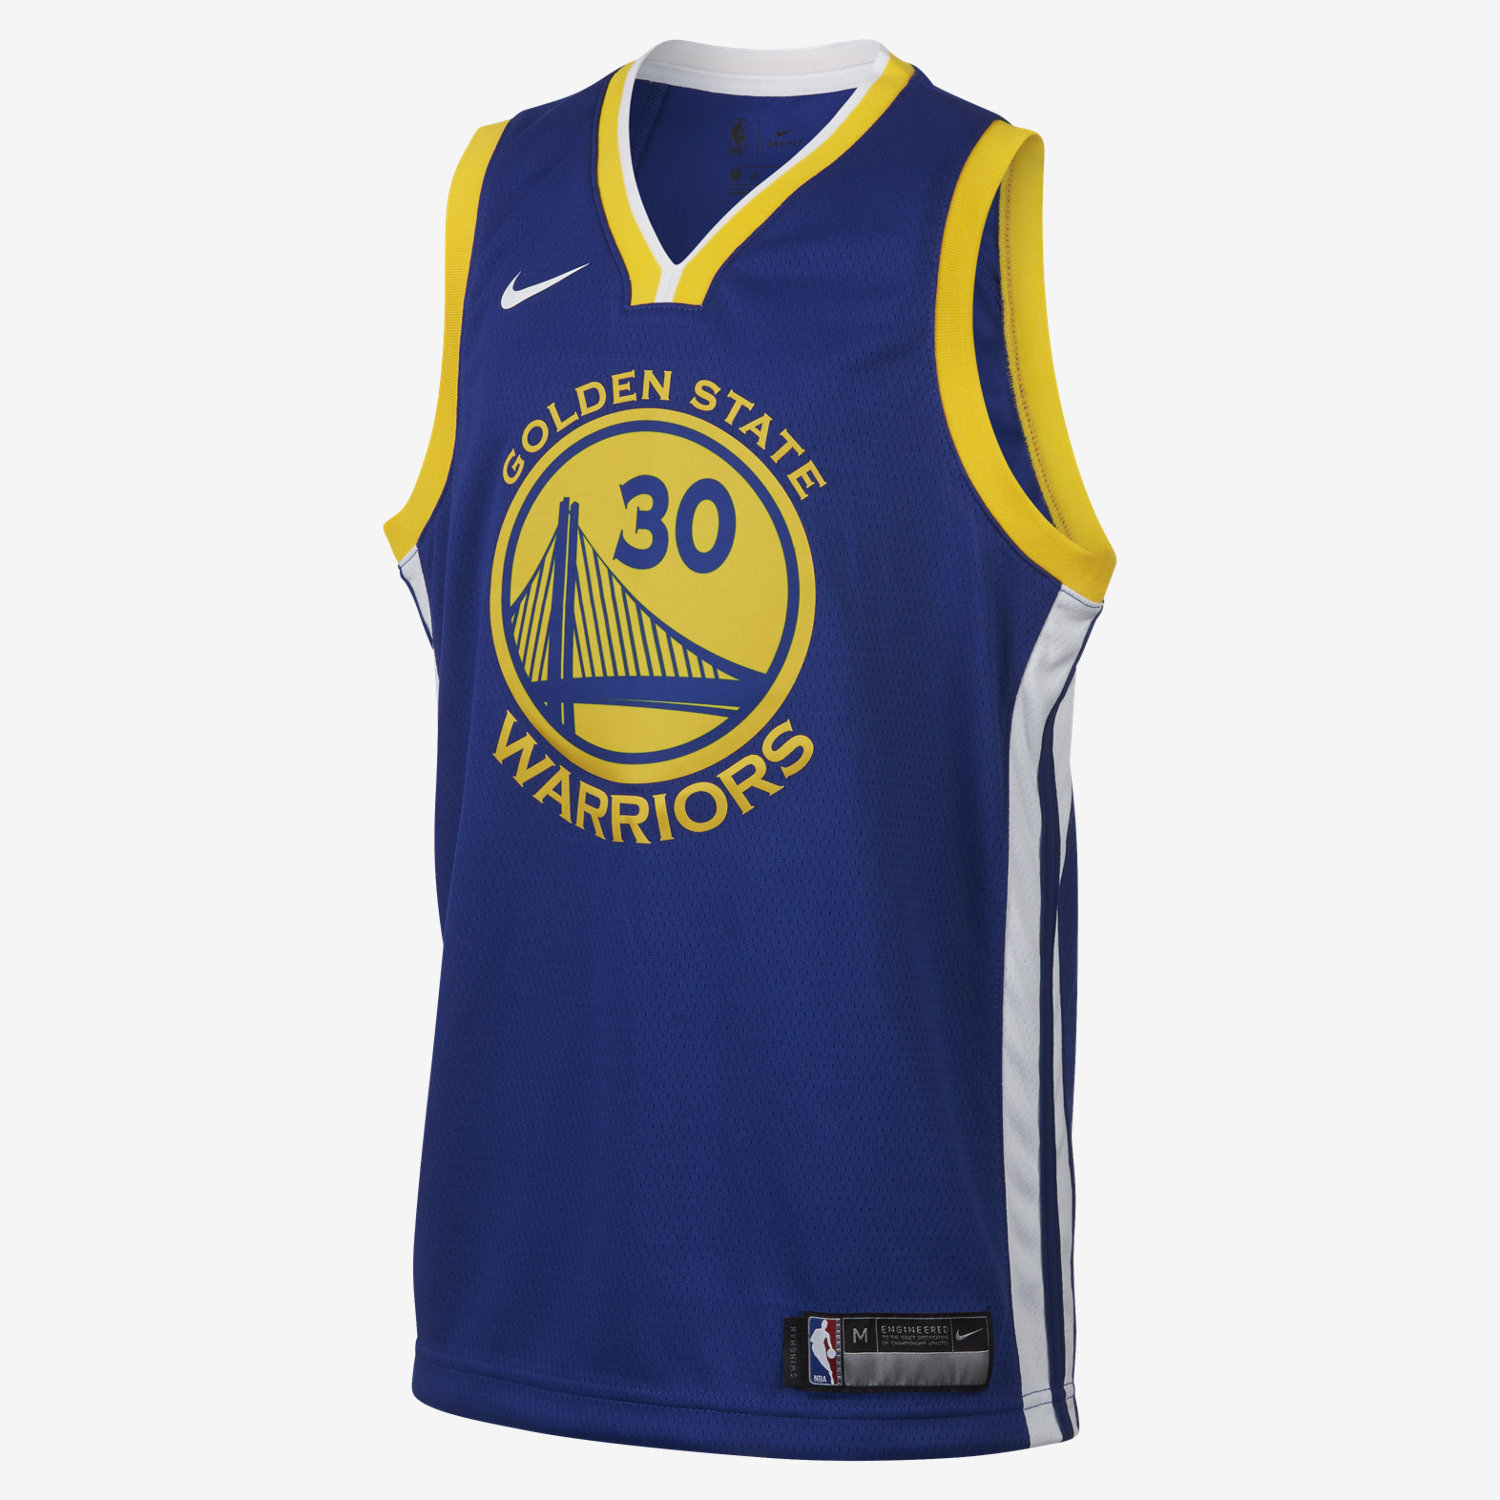 check out c98fe b2af7 Stephen Curry Golden State Warriors Nike Icon Edition Swingman Older Kids'  NBA Jersey